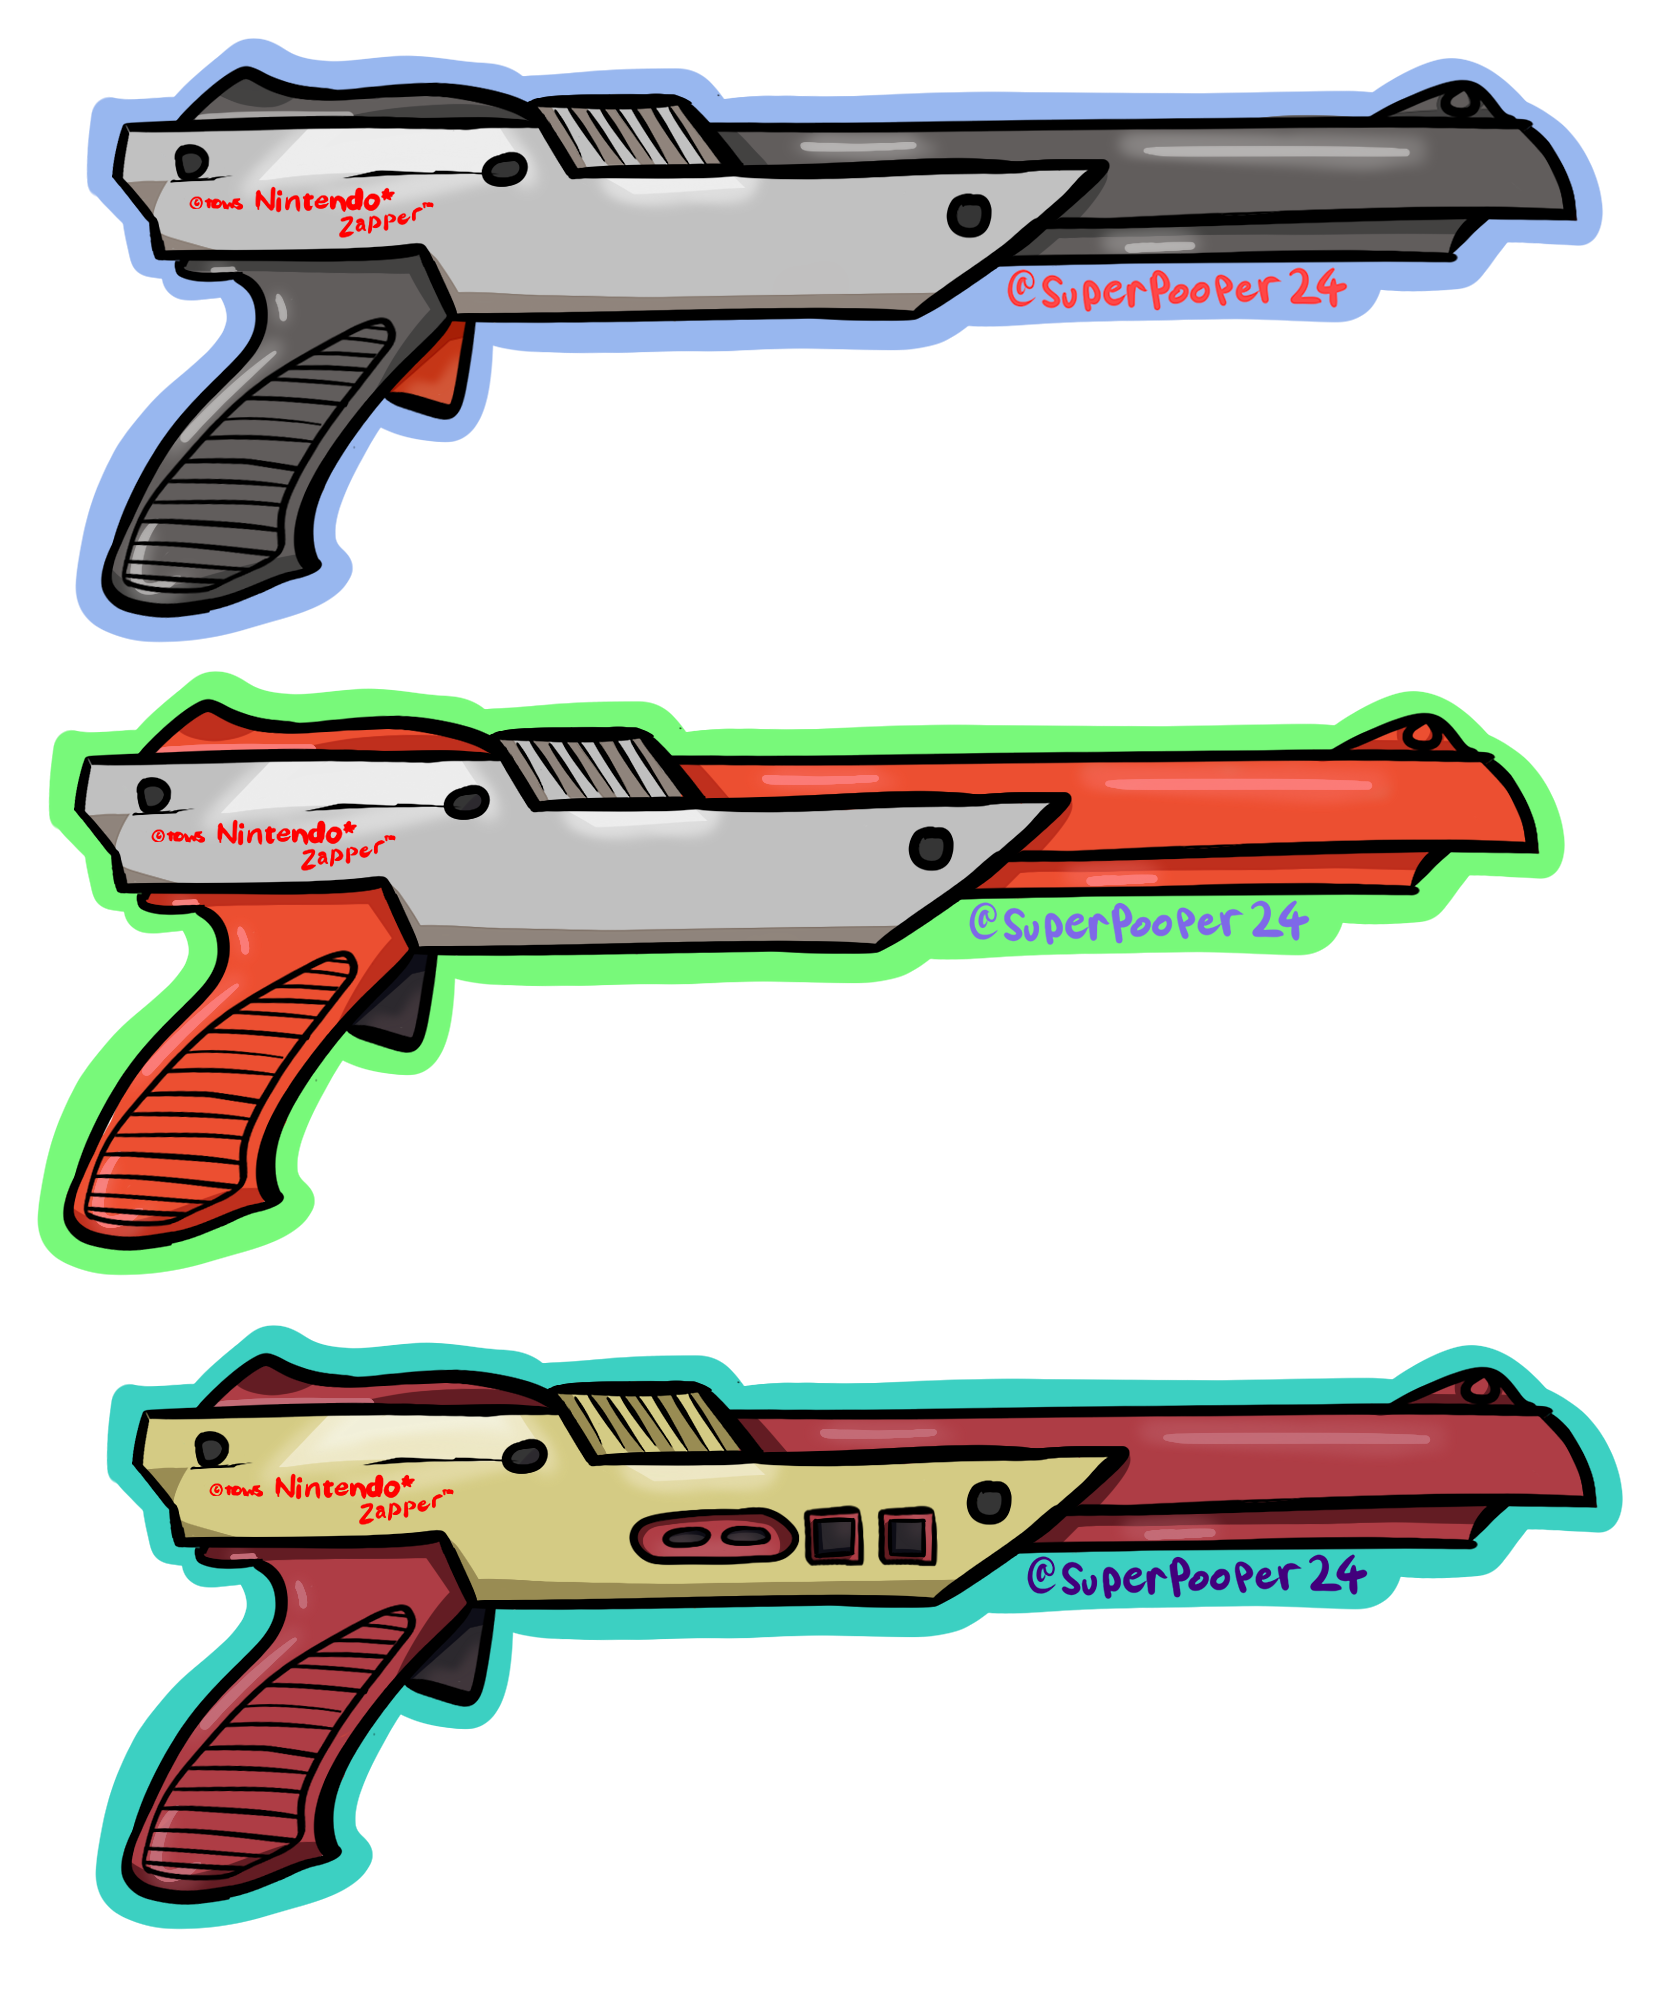 Weapon drawing bunch. Supernova on twitter ive